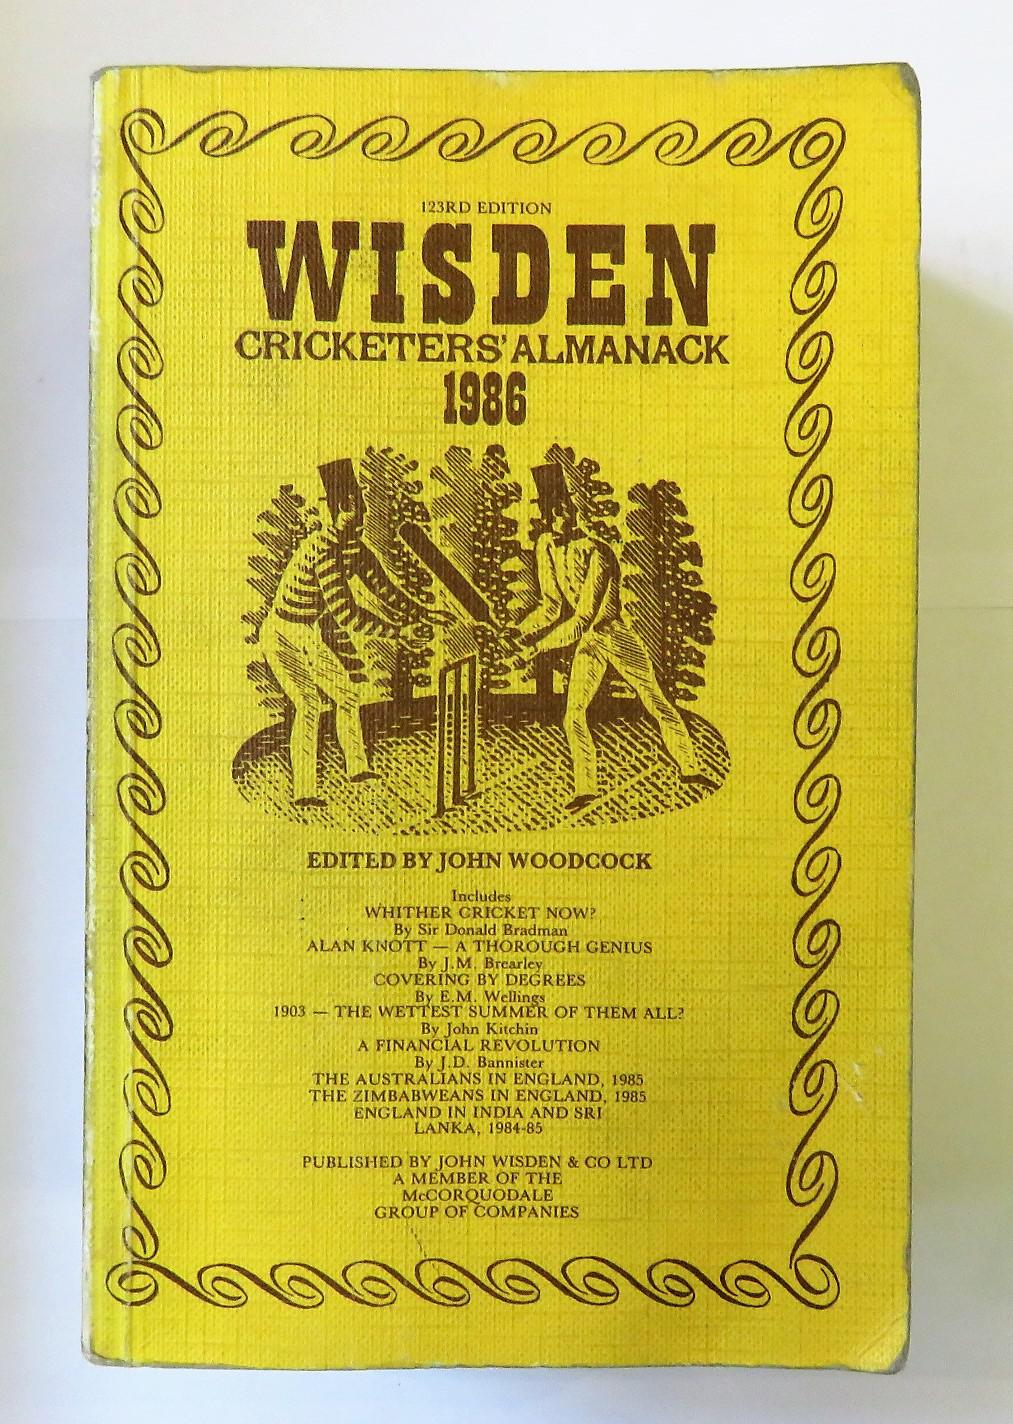 Wisden Cricketers' Almanack 1986